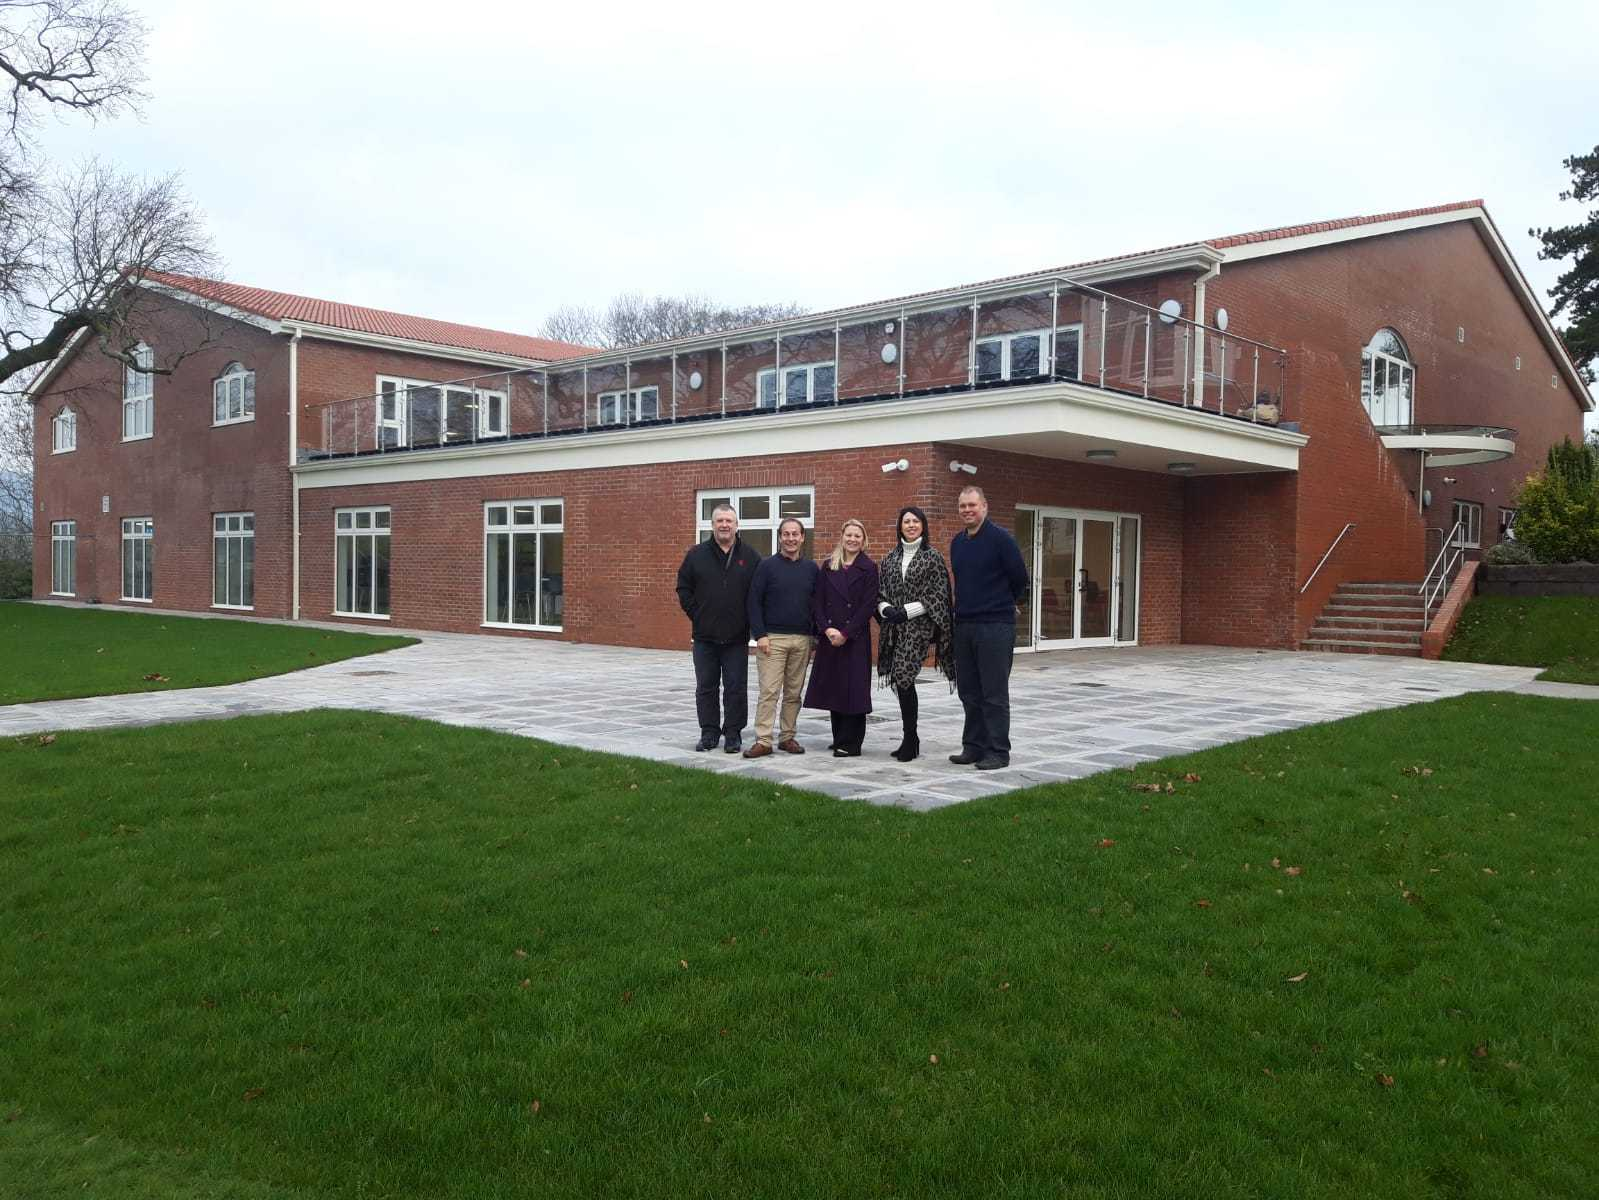 Andrew Watts (Facilities Manager), Robert Carnevale (Headmaster), Zoe Mott (NatWest Senior Relationship Manager), Lisa Pritchard (Head of Prep School), Andrew Knight (Director of Business and Finance)